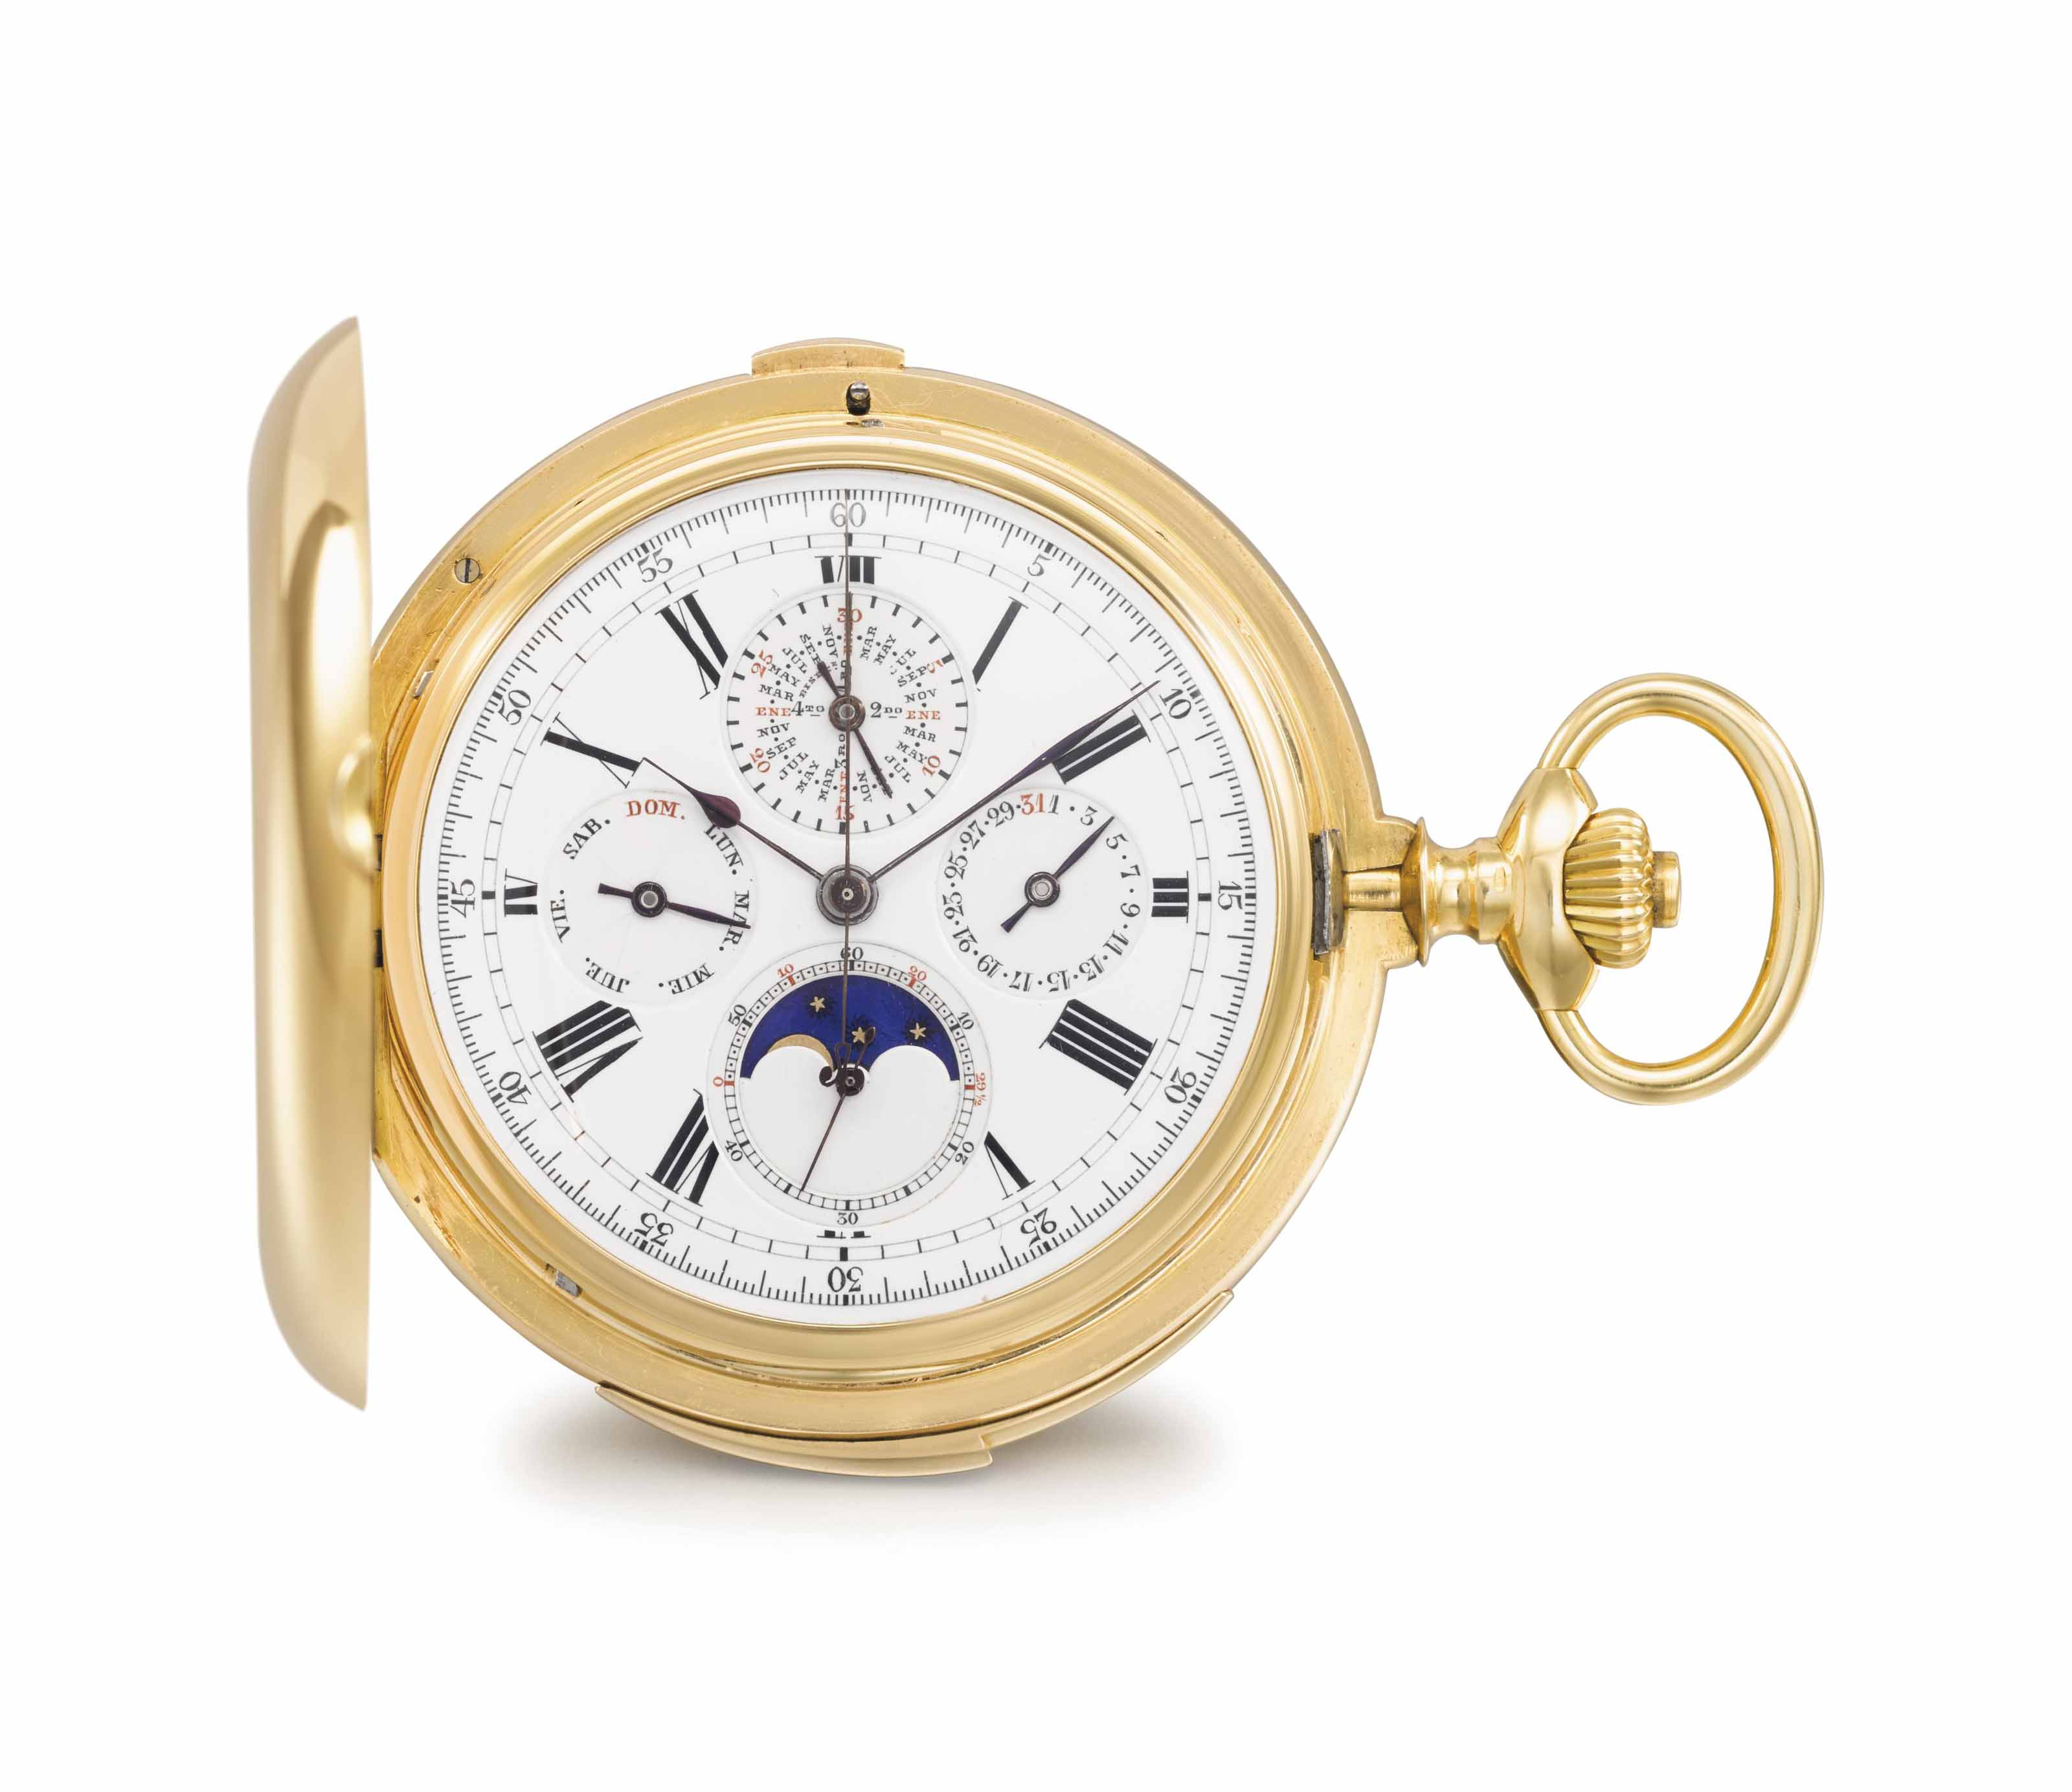 Louis Audemars. A fine and rare 18K gold hunter case minute repeating perpetual calendar keyless lever chronograph watch with moon phases